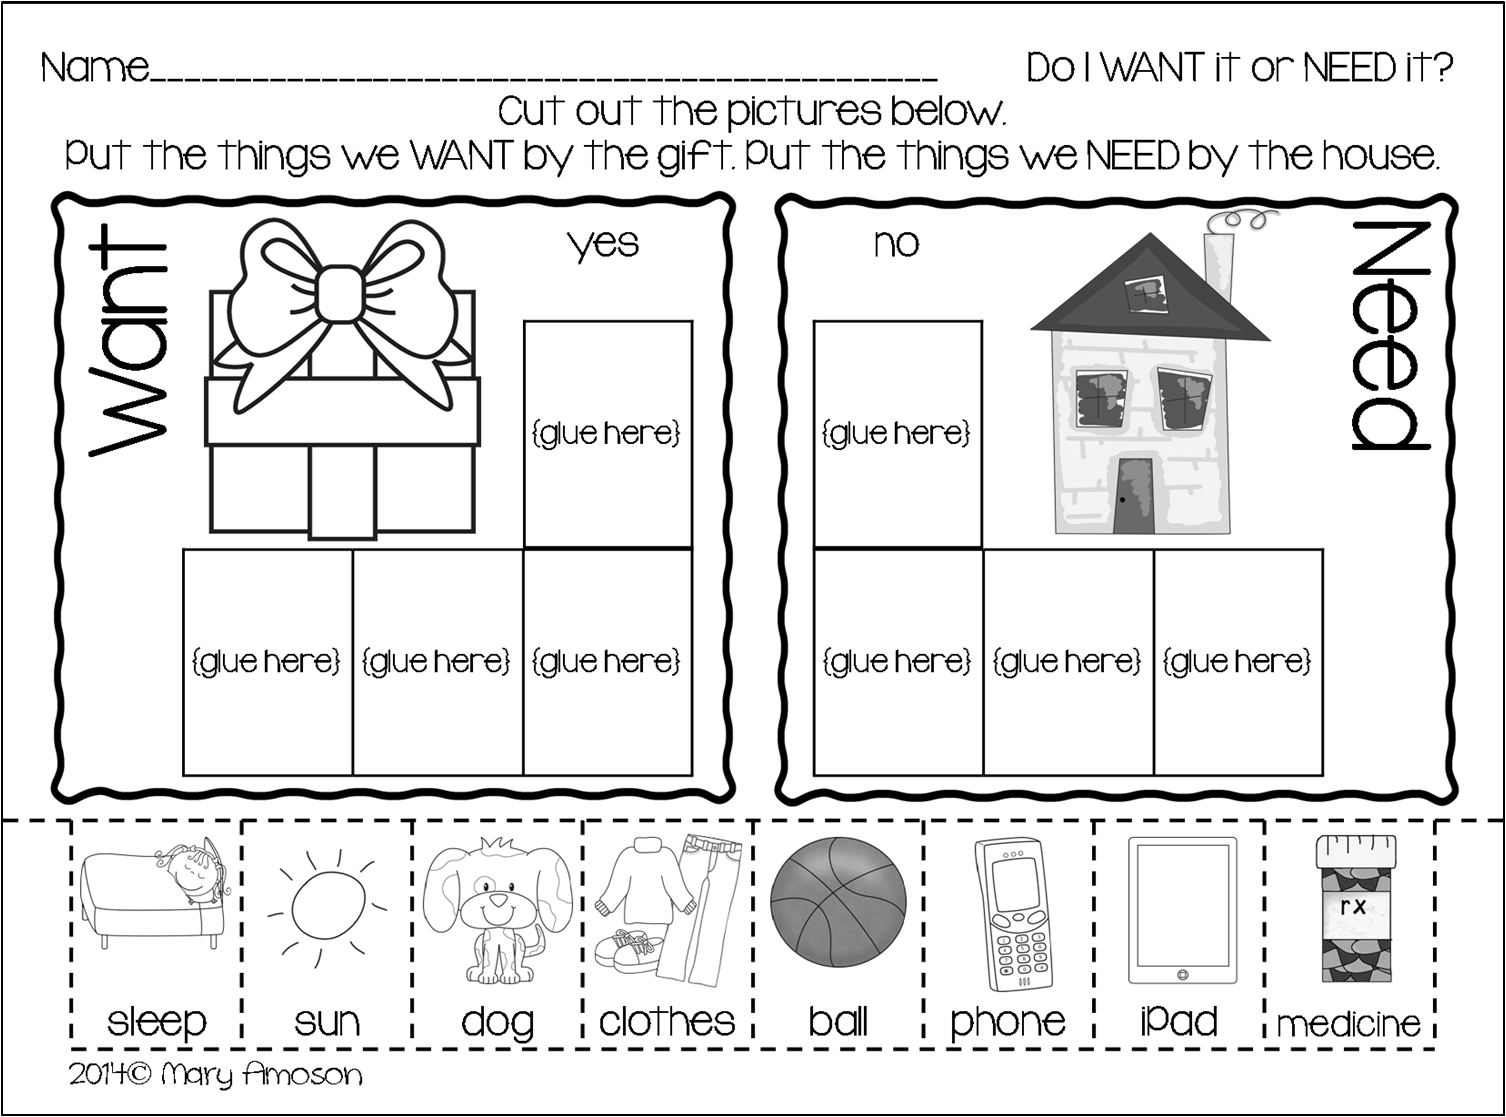 17 Best Images Of Want Vs Need Worksheet Free Printable